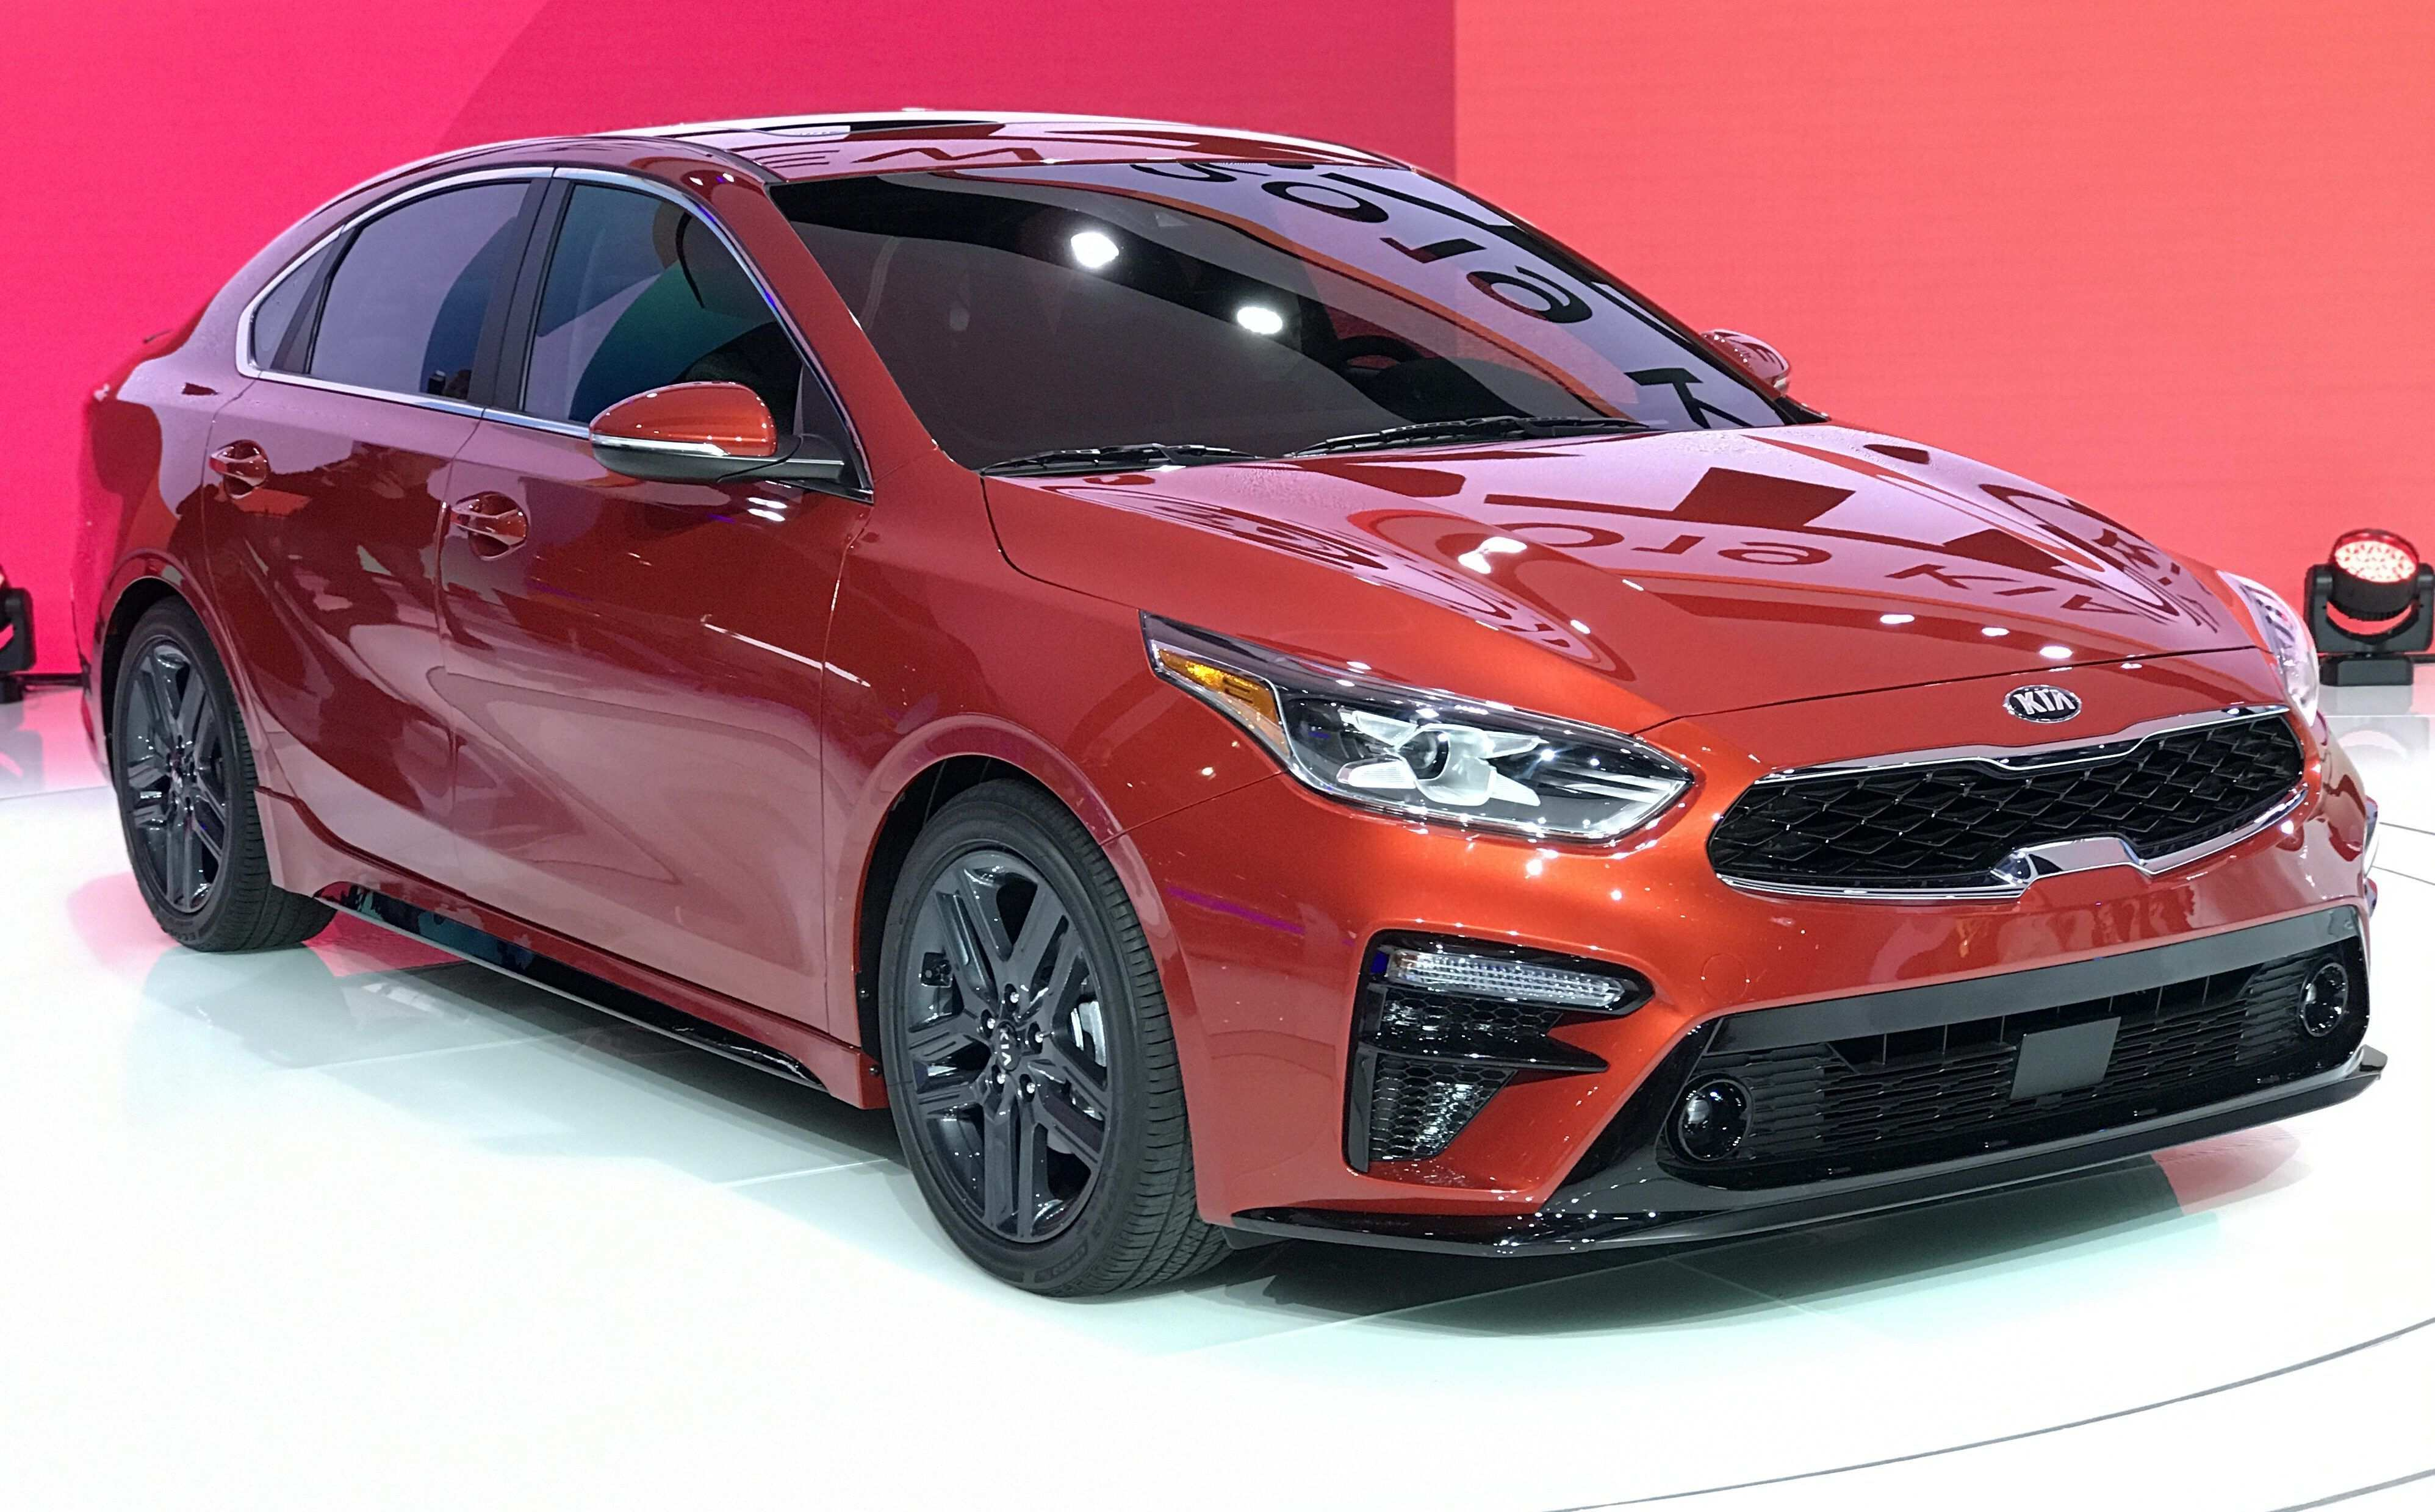 28 The Best Kia Koup 2019 Release Date